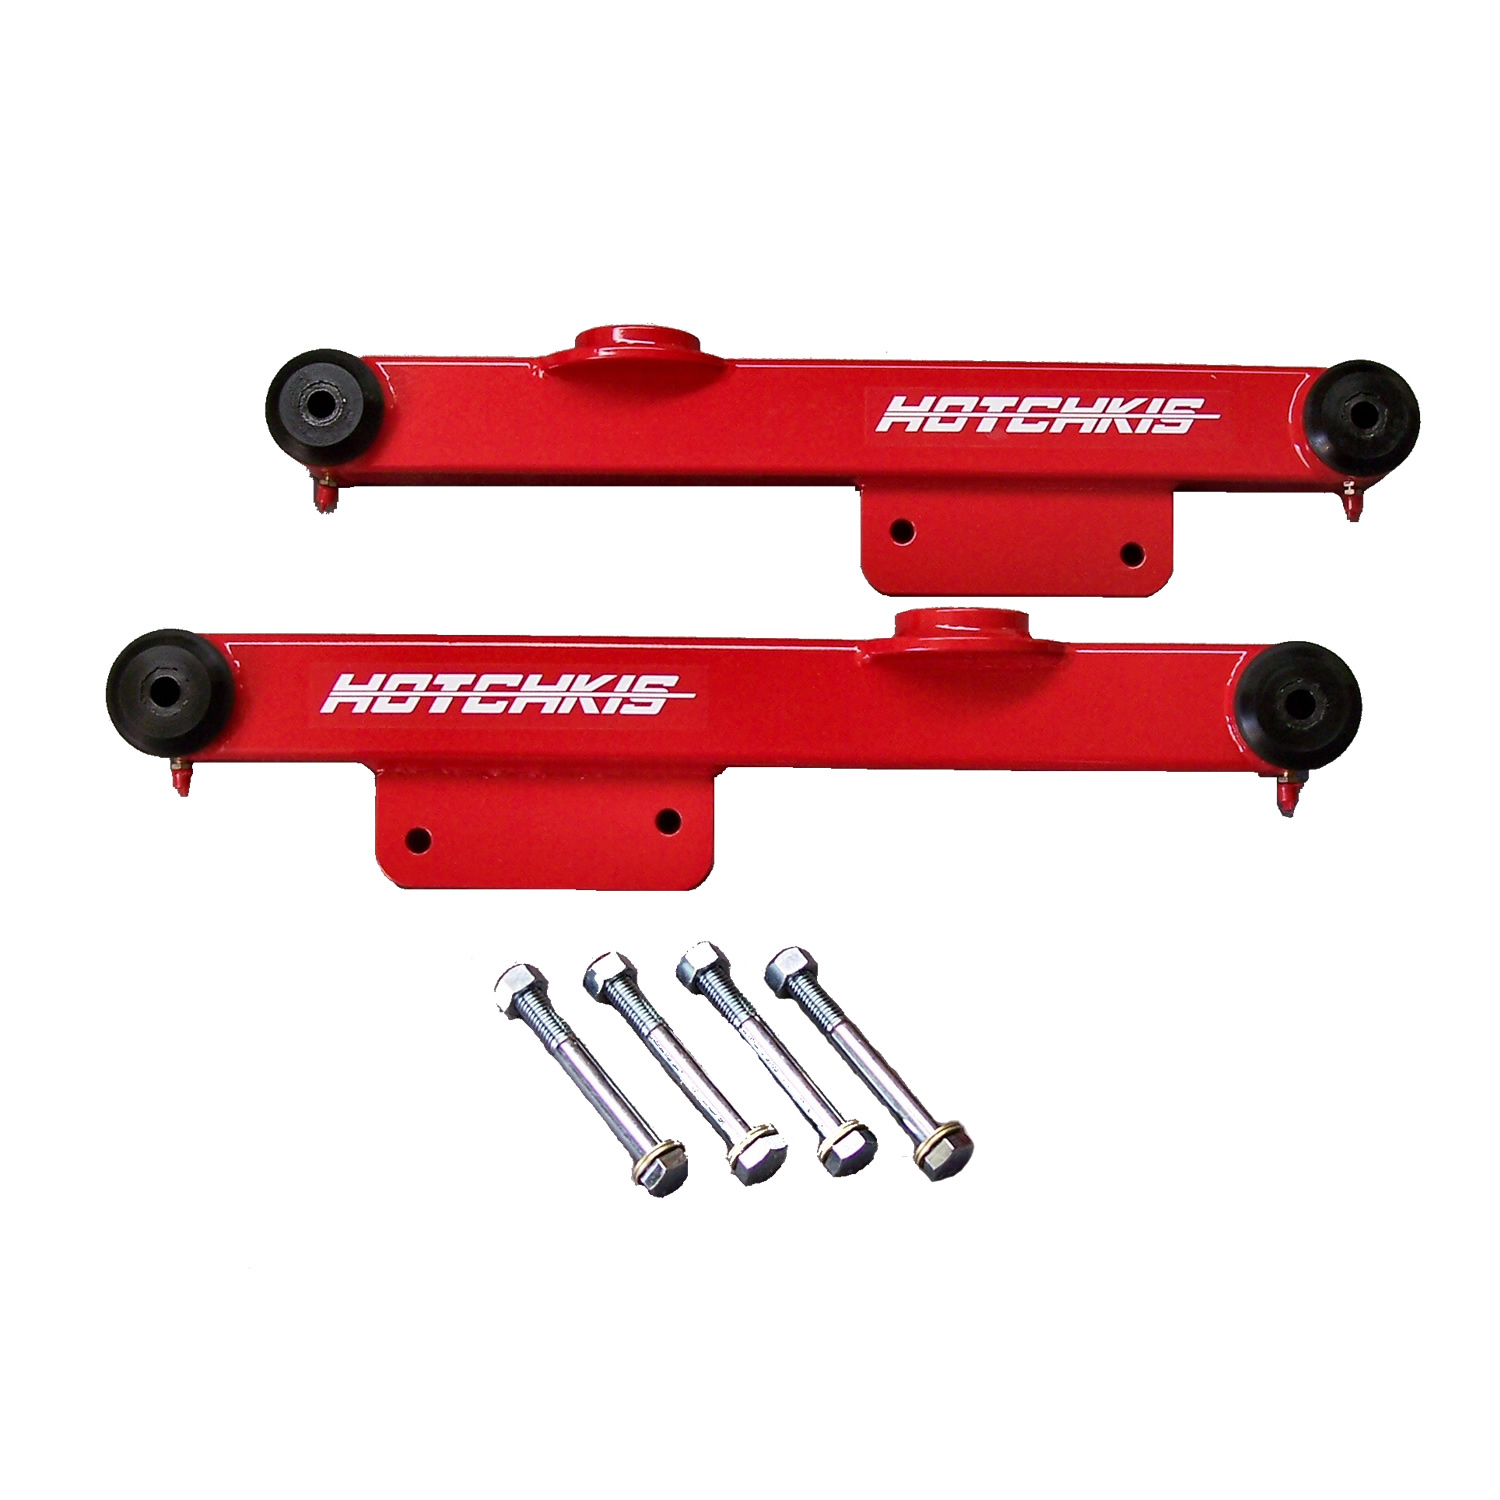 1979-1998 Mustang Lower Trailing Arms  Red – from Hotchkis Sport Suspension